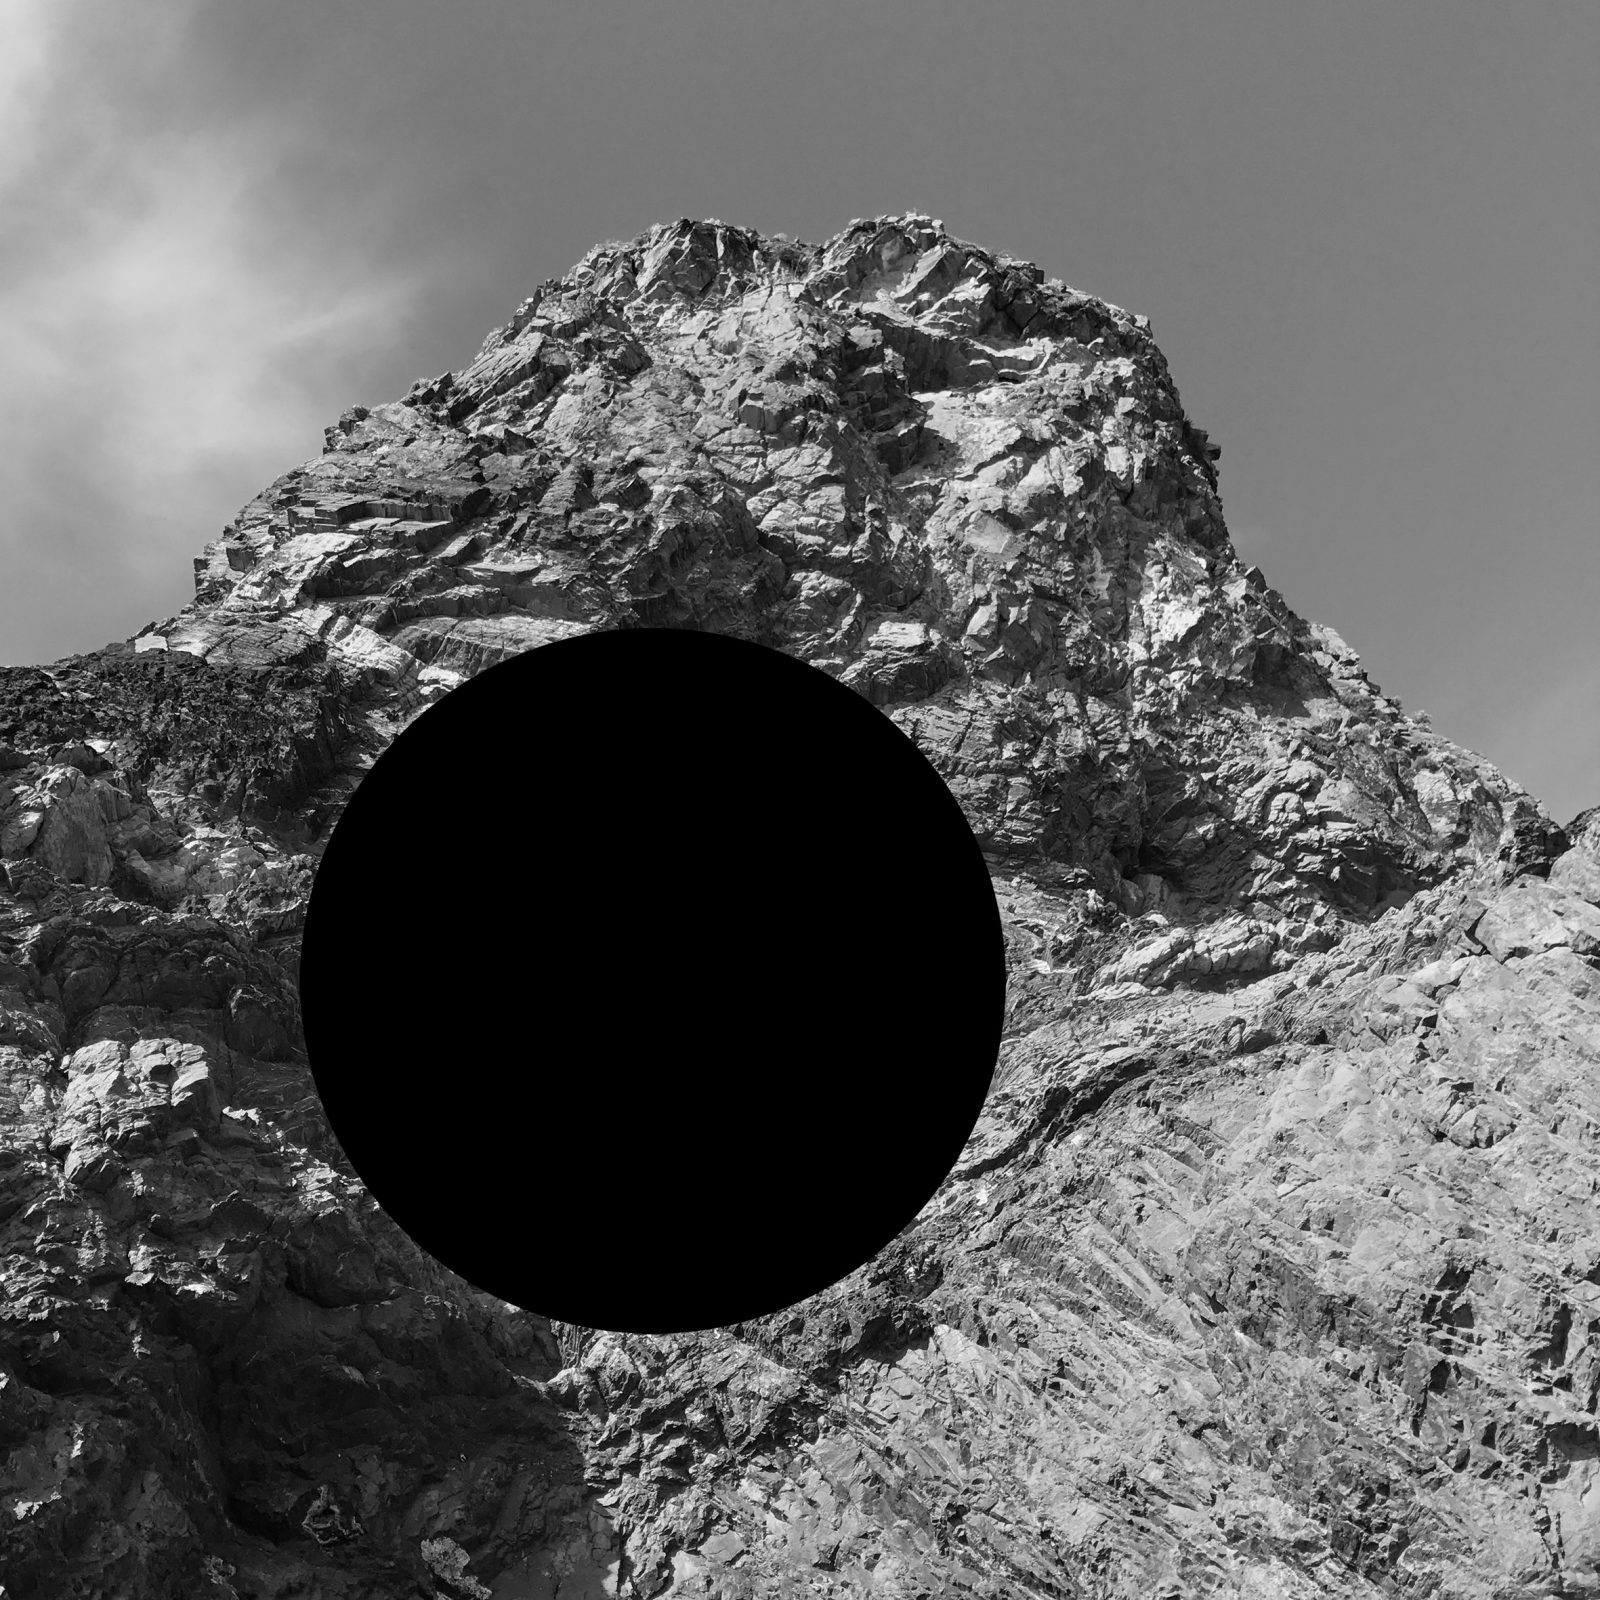 James Tylor, Vanished From an Untouched Landscape 4, 2018, Inkjet print on hahnemuhle paper with hole removed to a black velvet void, 50x50cm.